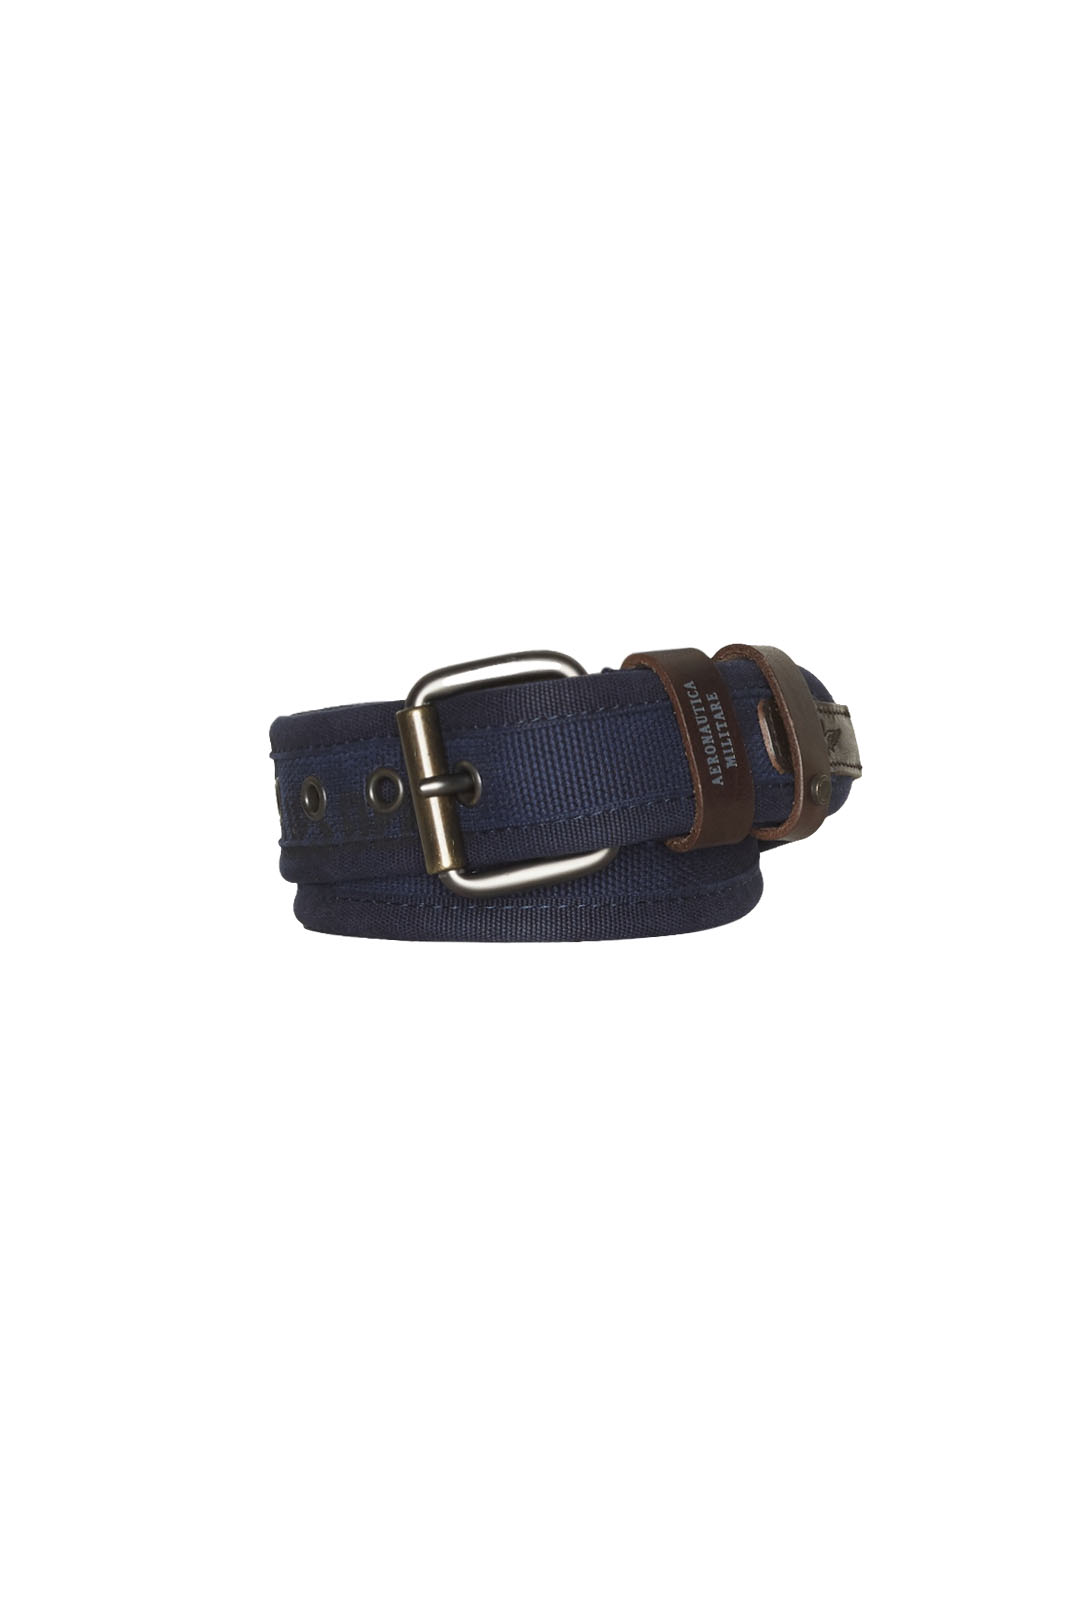 Cotton belt with leather finishes        1